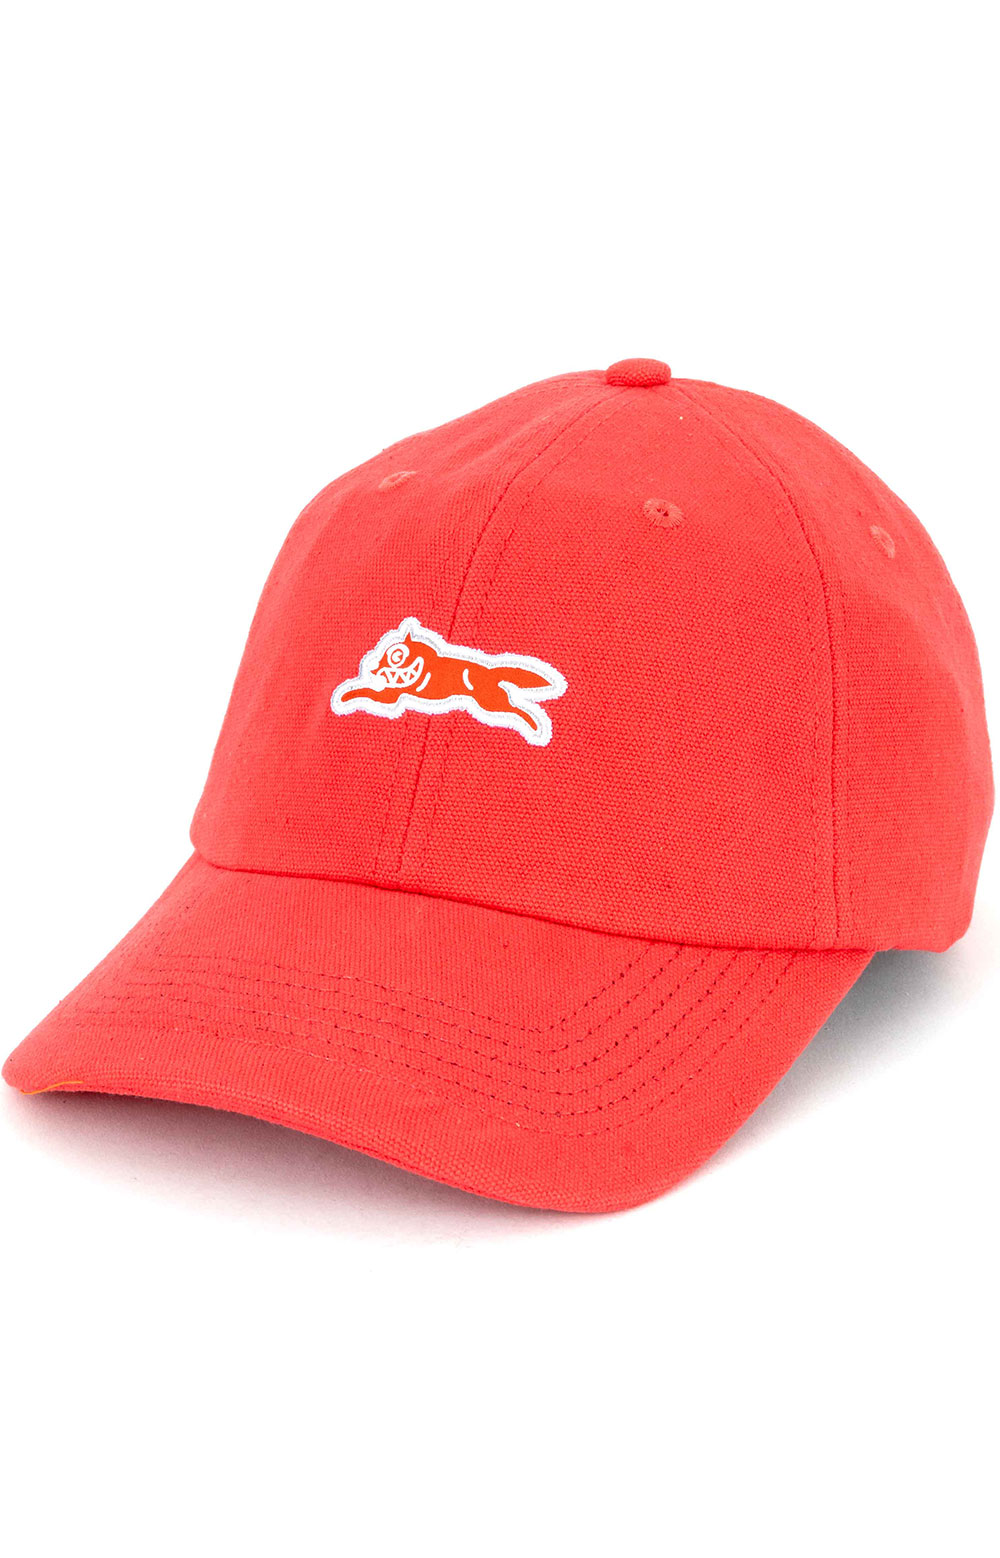 Sluggo Dad Hat - Burnt Sienna